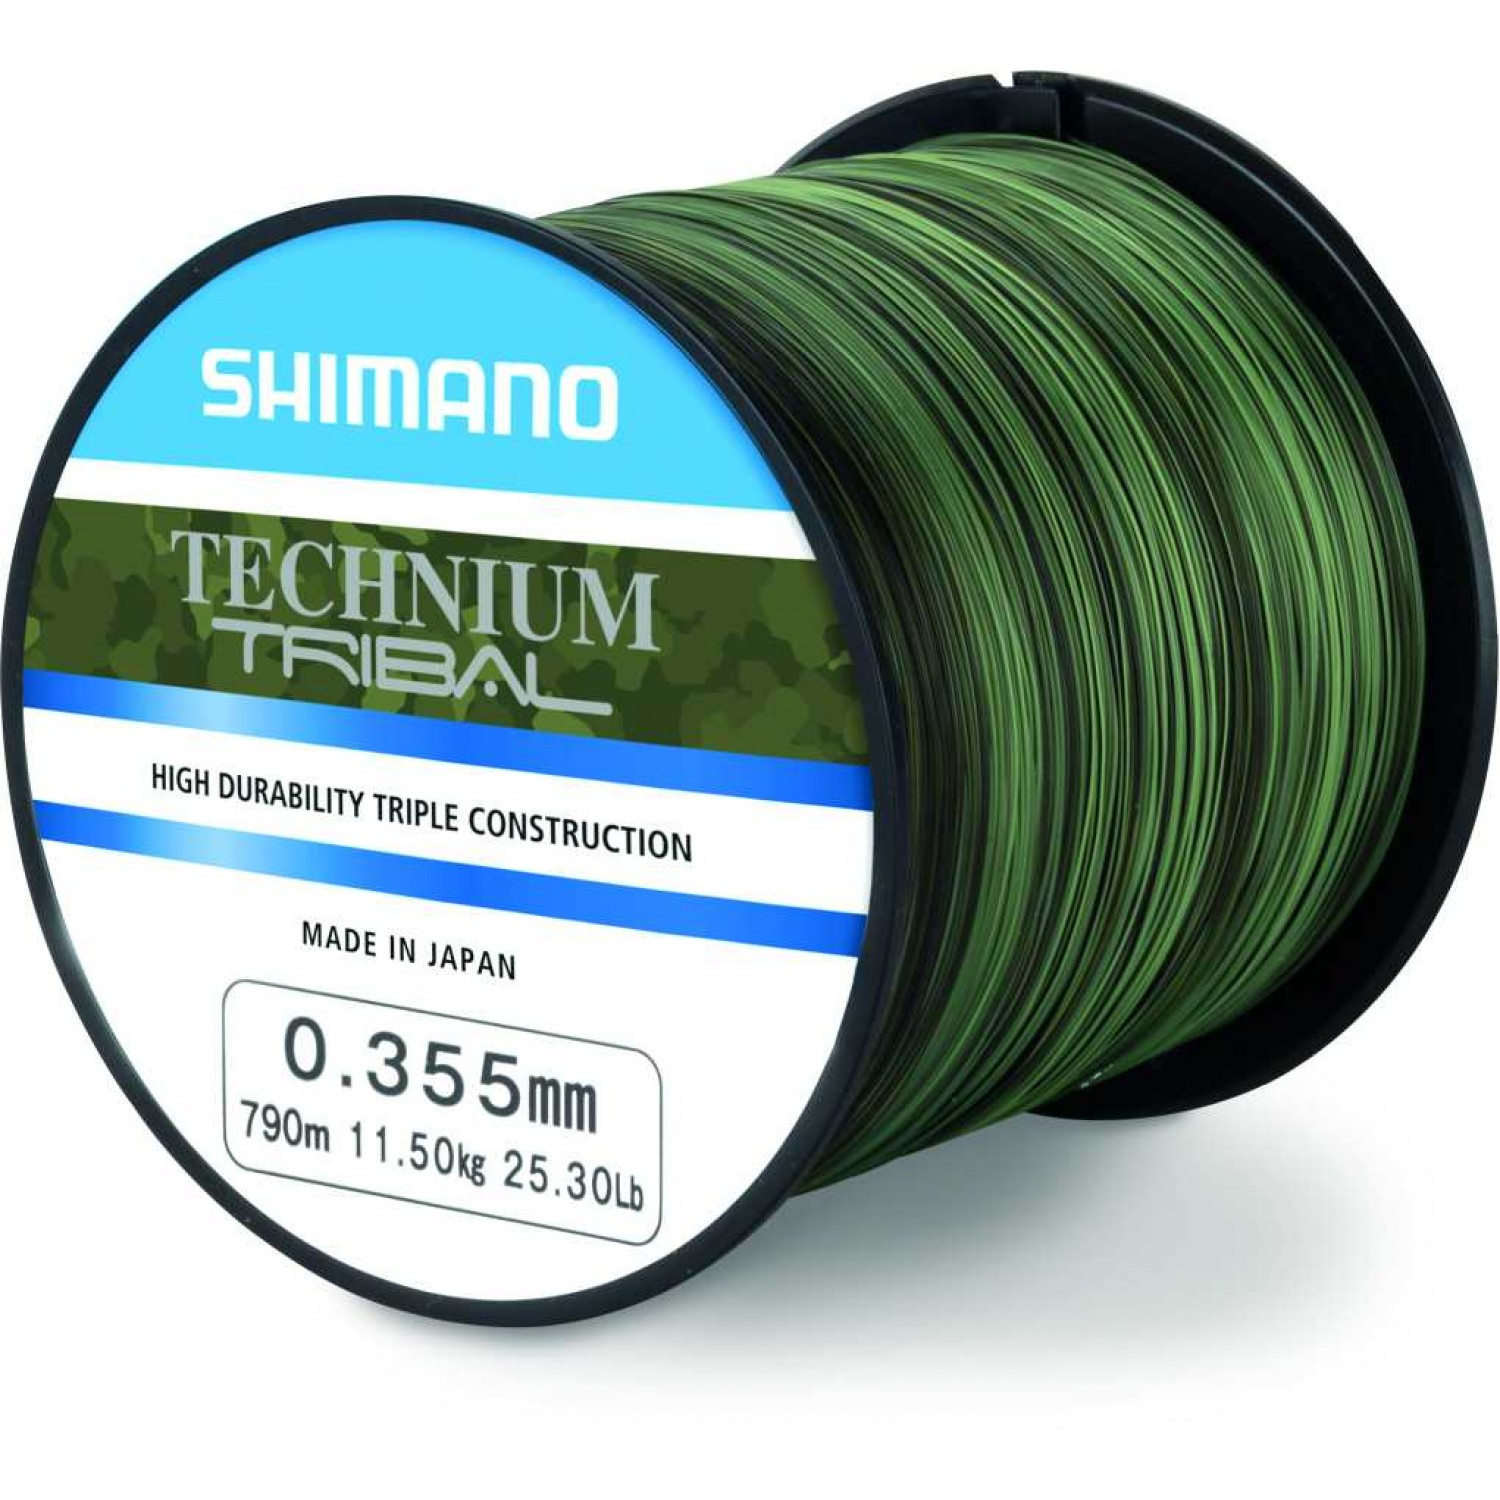 Shimano Technium Tribal